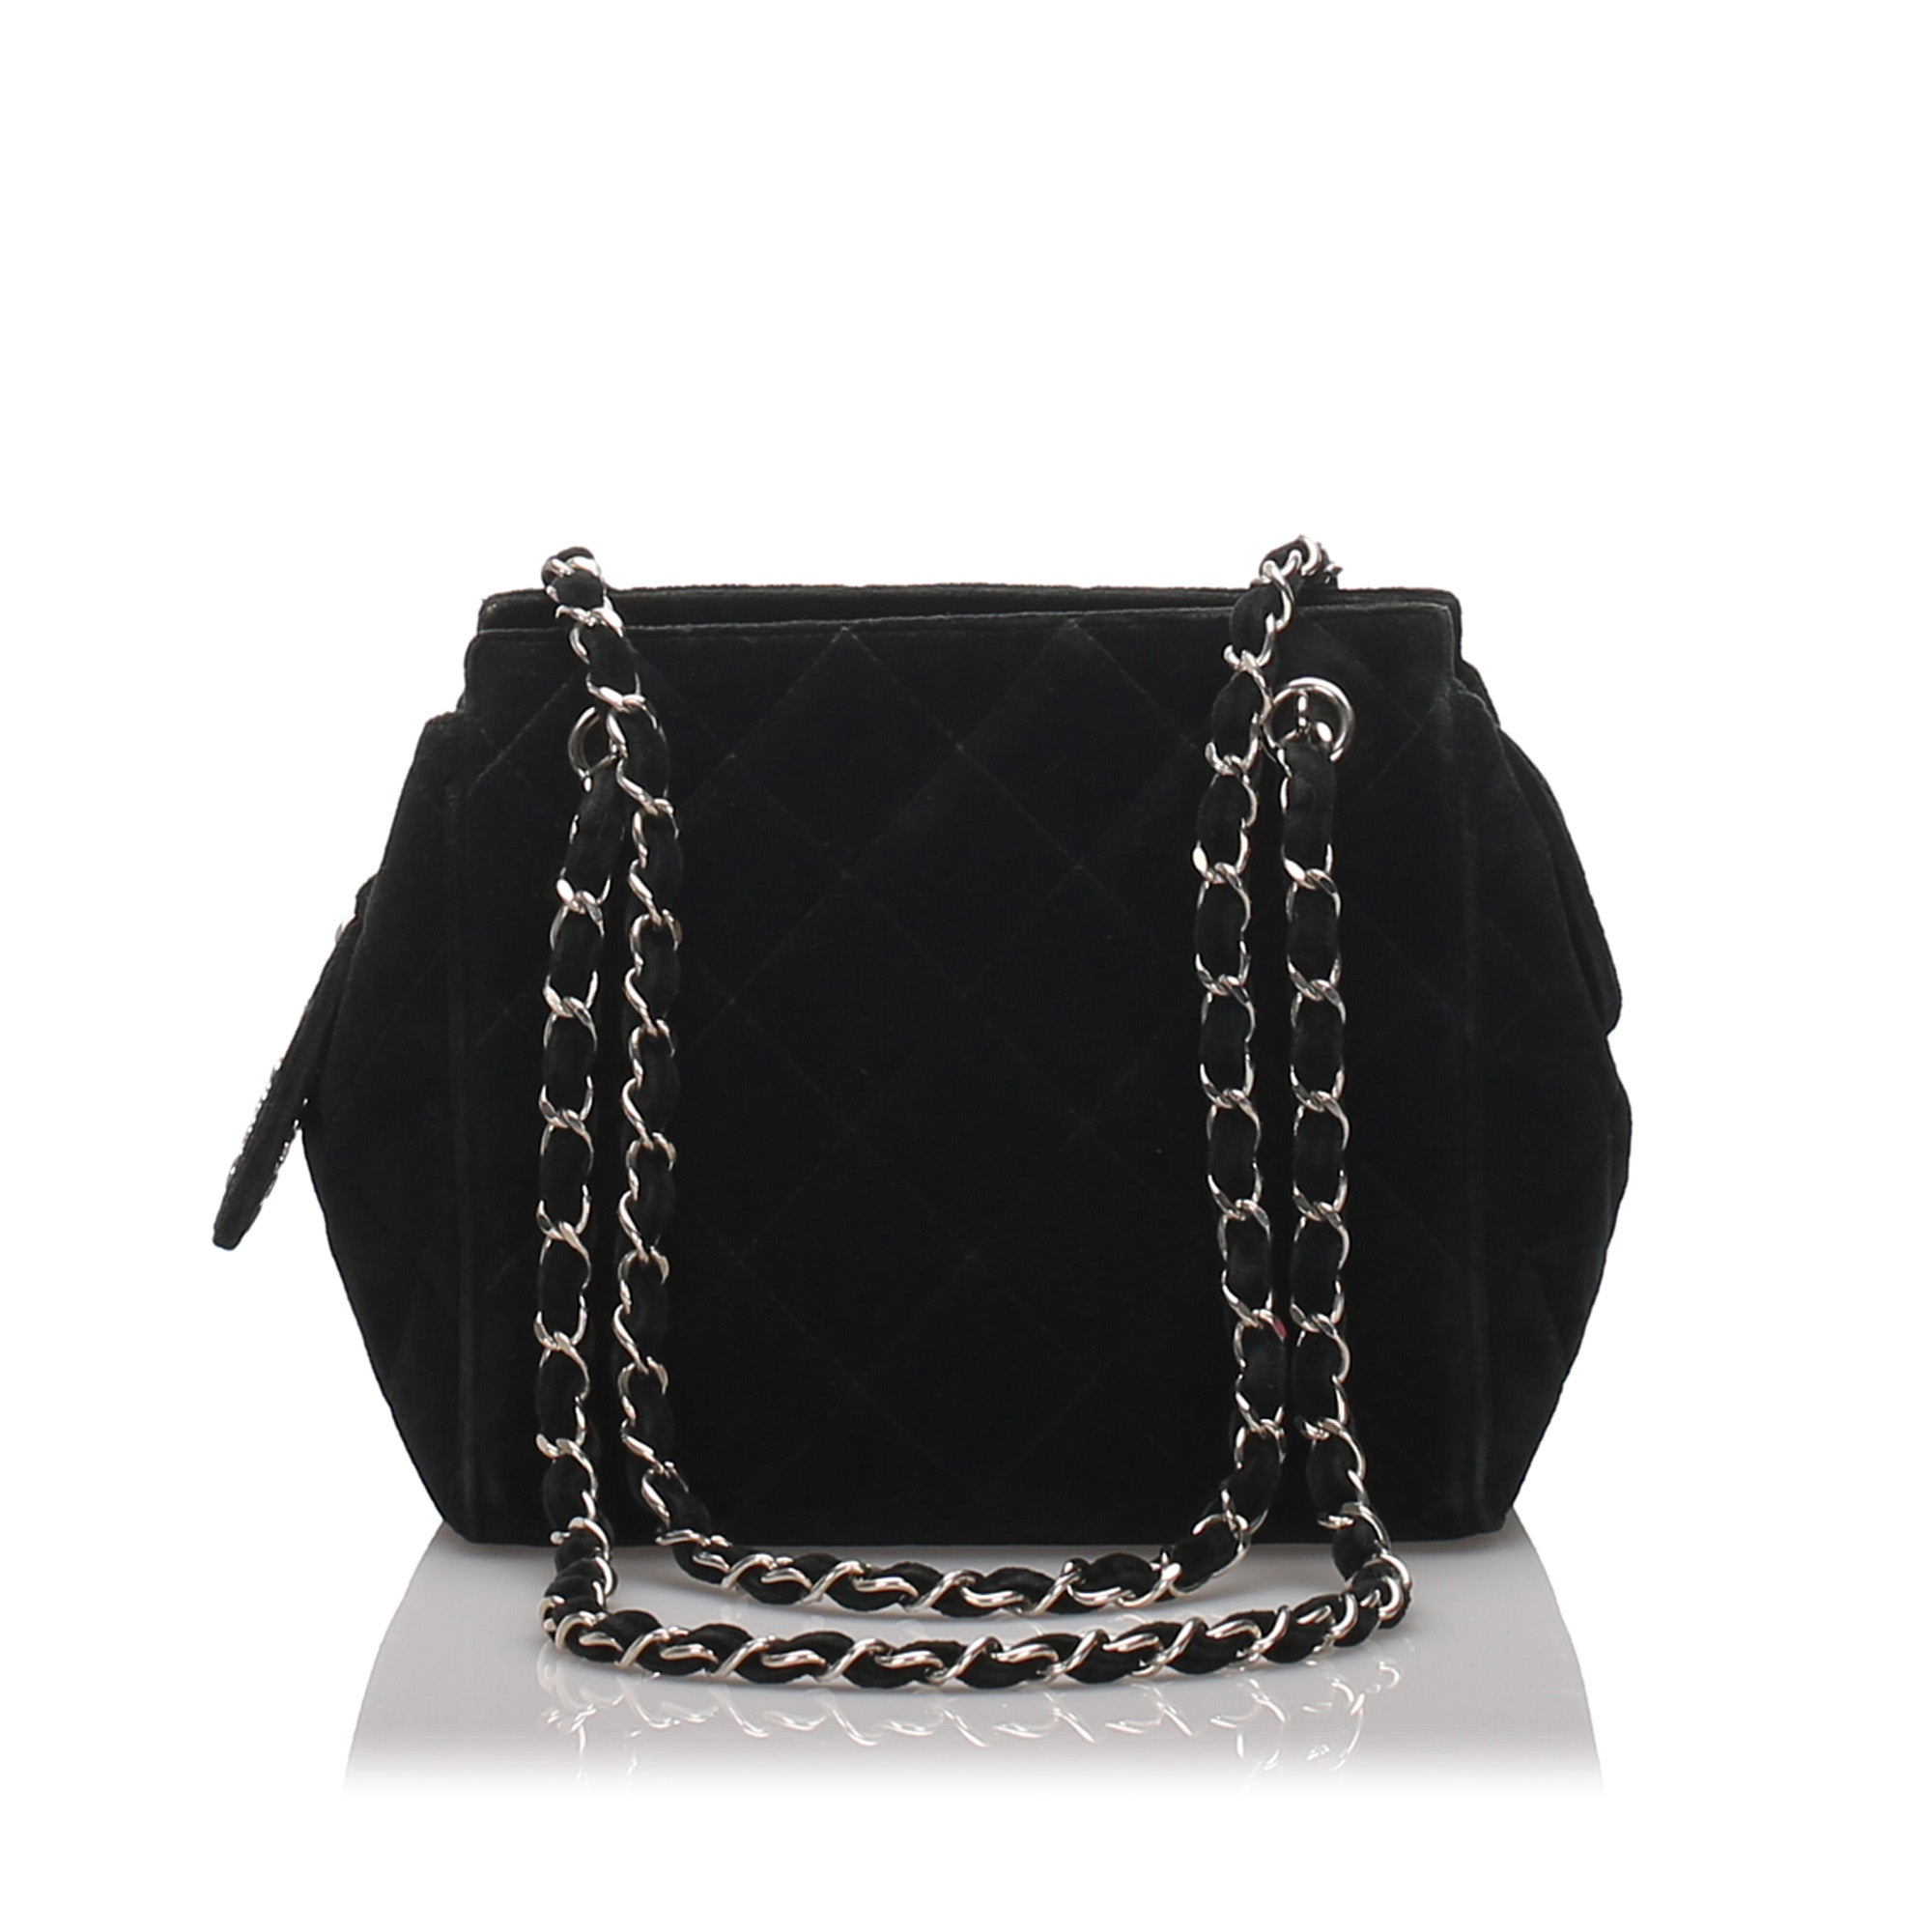 Chanel Black Suede Chain Shoulder Bag